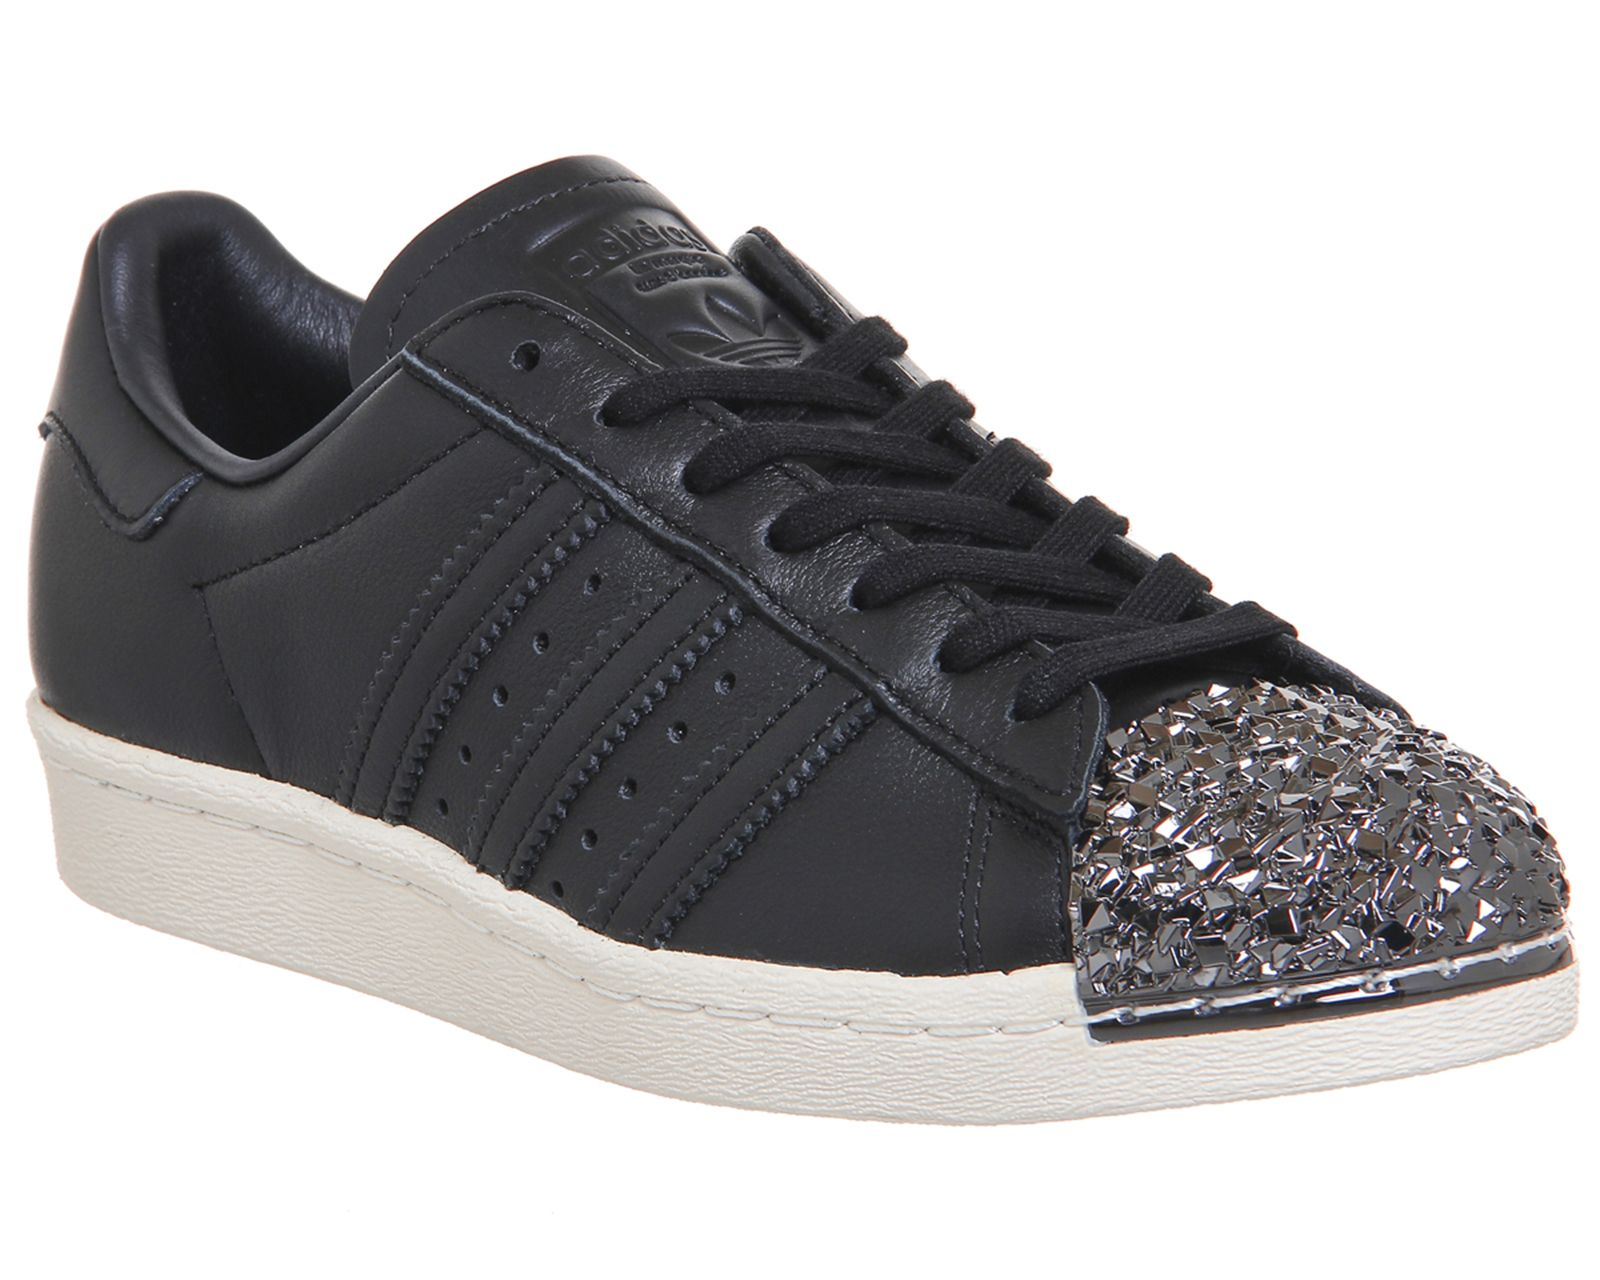 outlet store 47815 cc0d1 Adidas Superstar 80 s Metal Toe Black Shattered Mirror 3d